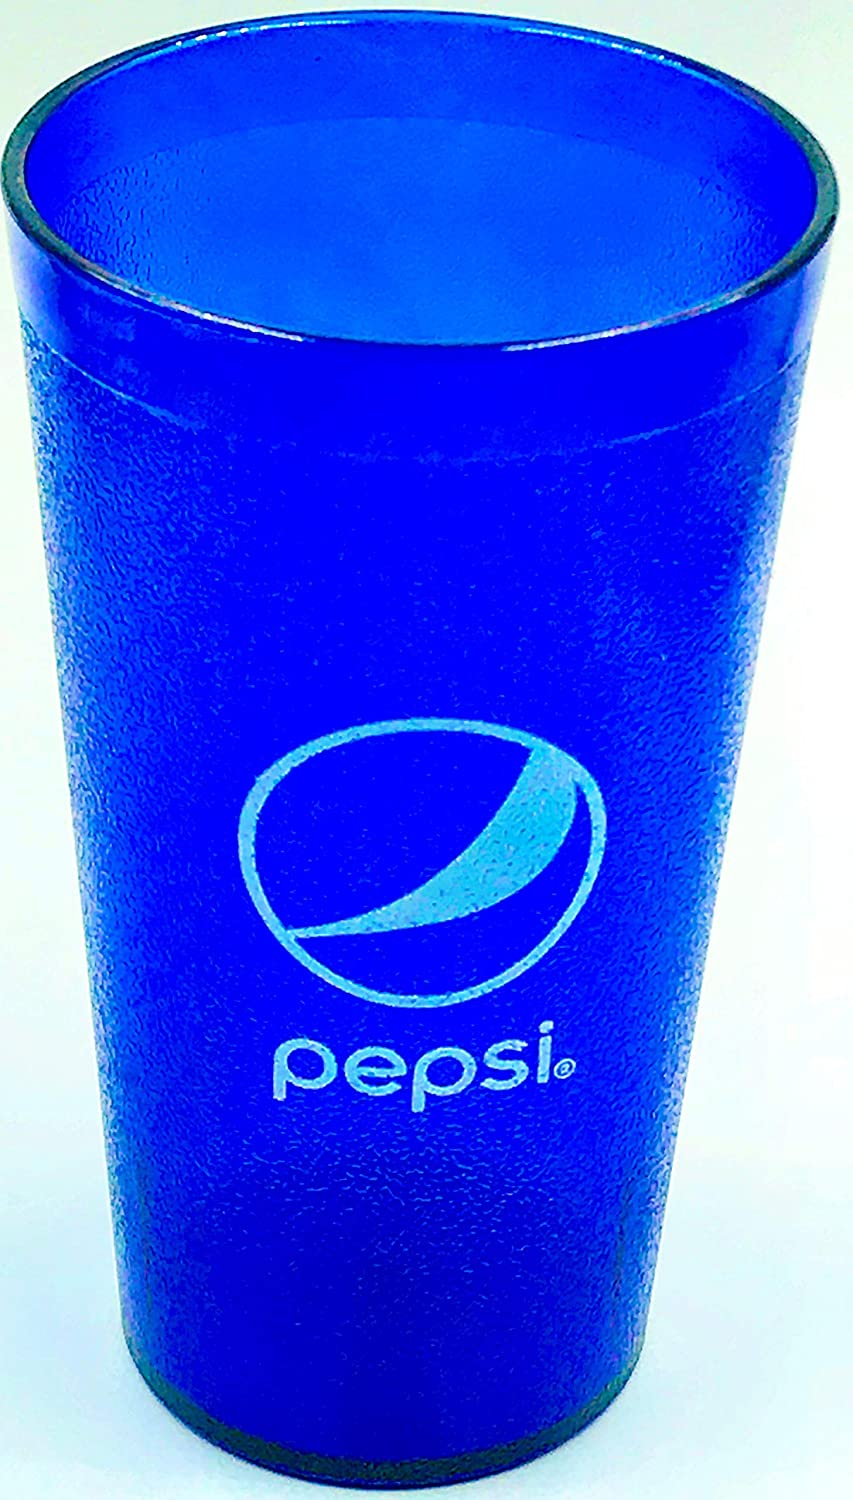 PEPSI Classic Globe Logo Royal Blue Plastic TuMblers Set of 4-16oz